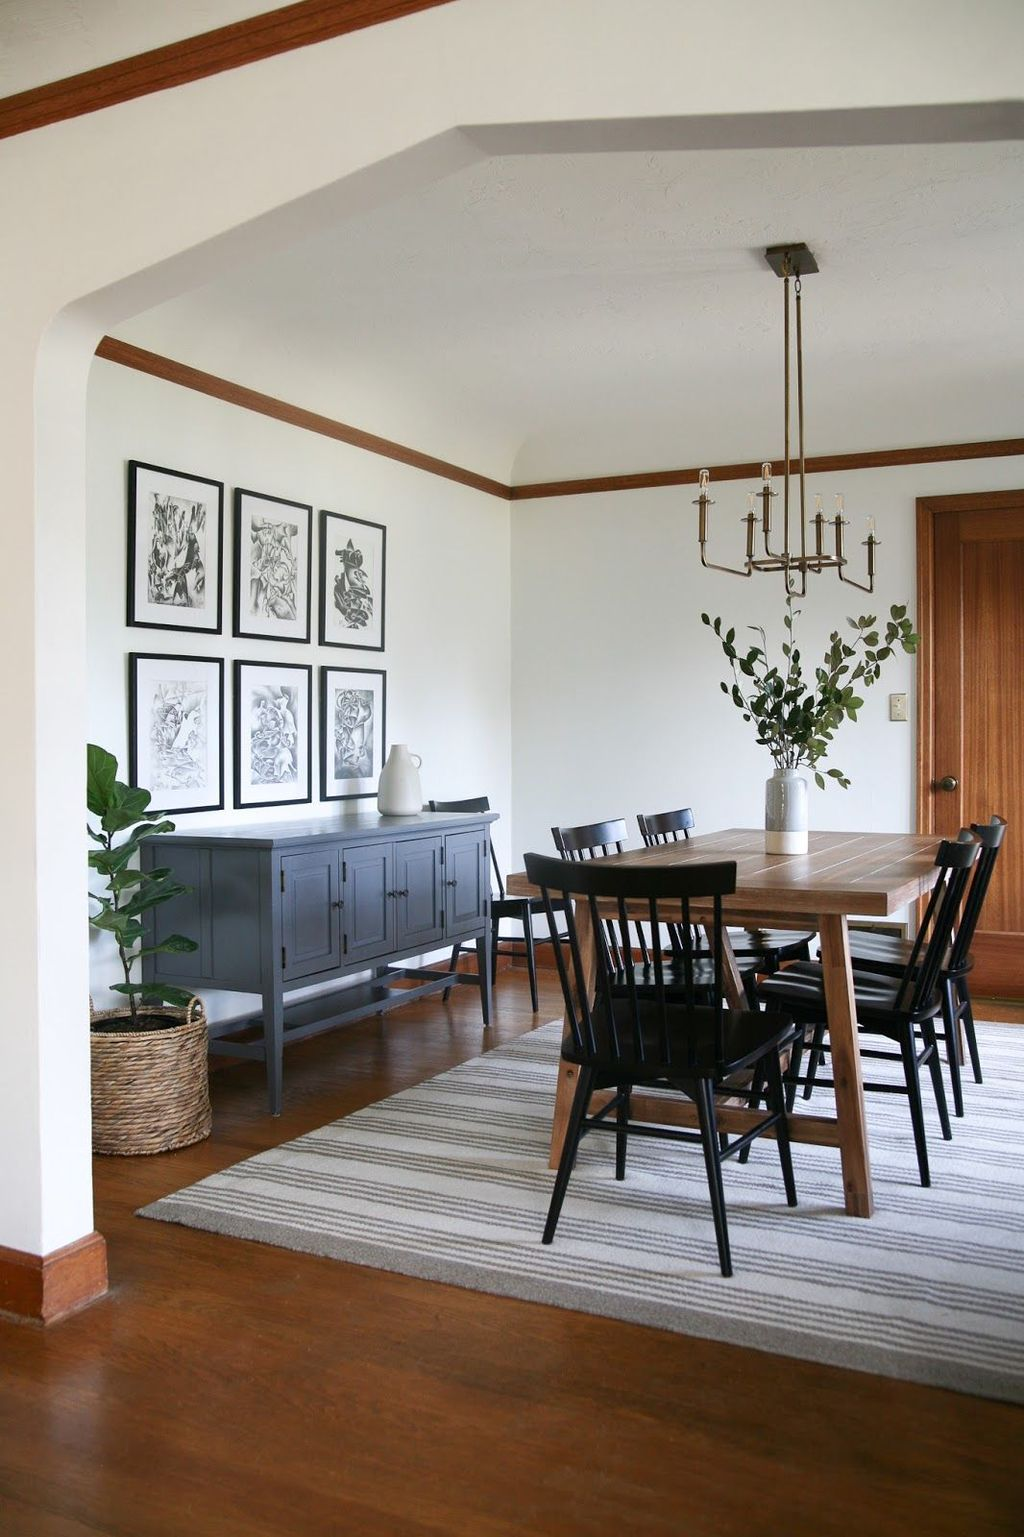 Admirable Dining Room Design Ideas You Will Love 20